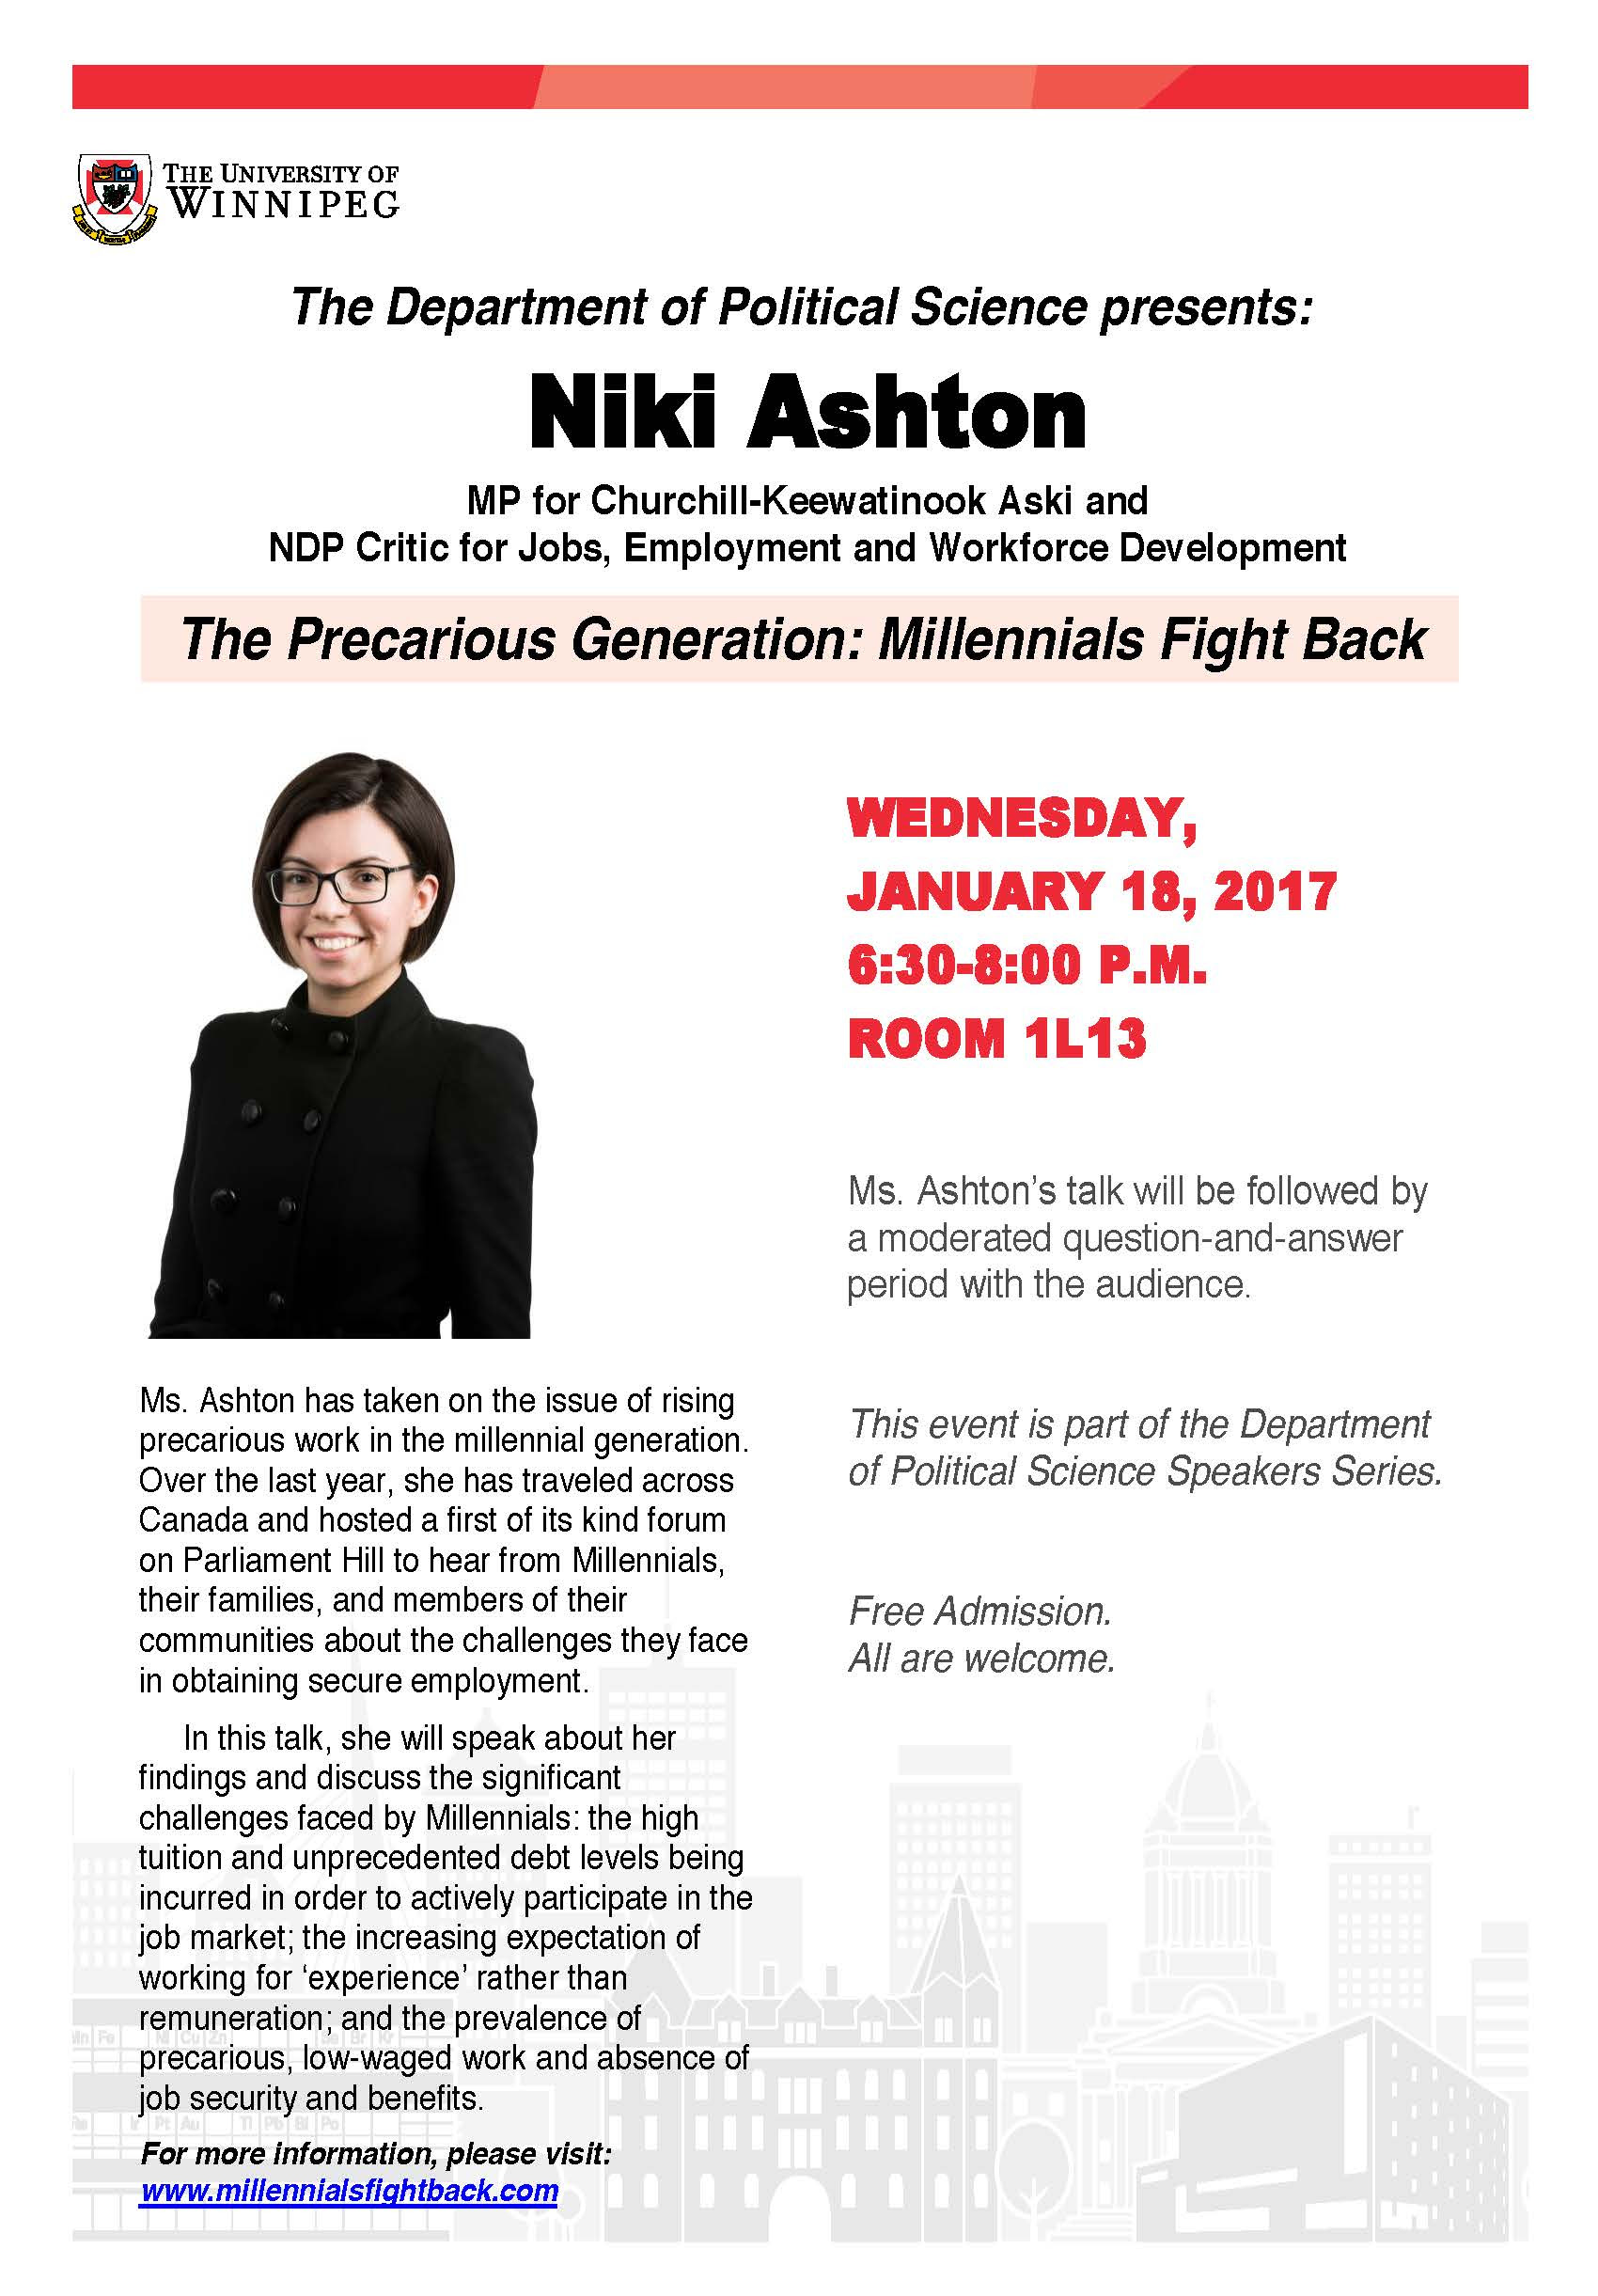 The Department Of Political Science Presents Niki Ashton The Precarious Generation Millennials Fight Back The Uwsa